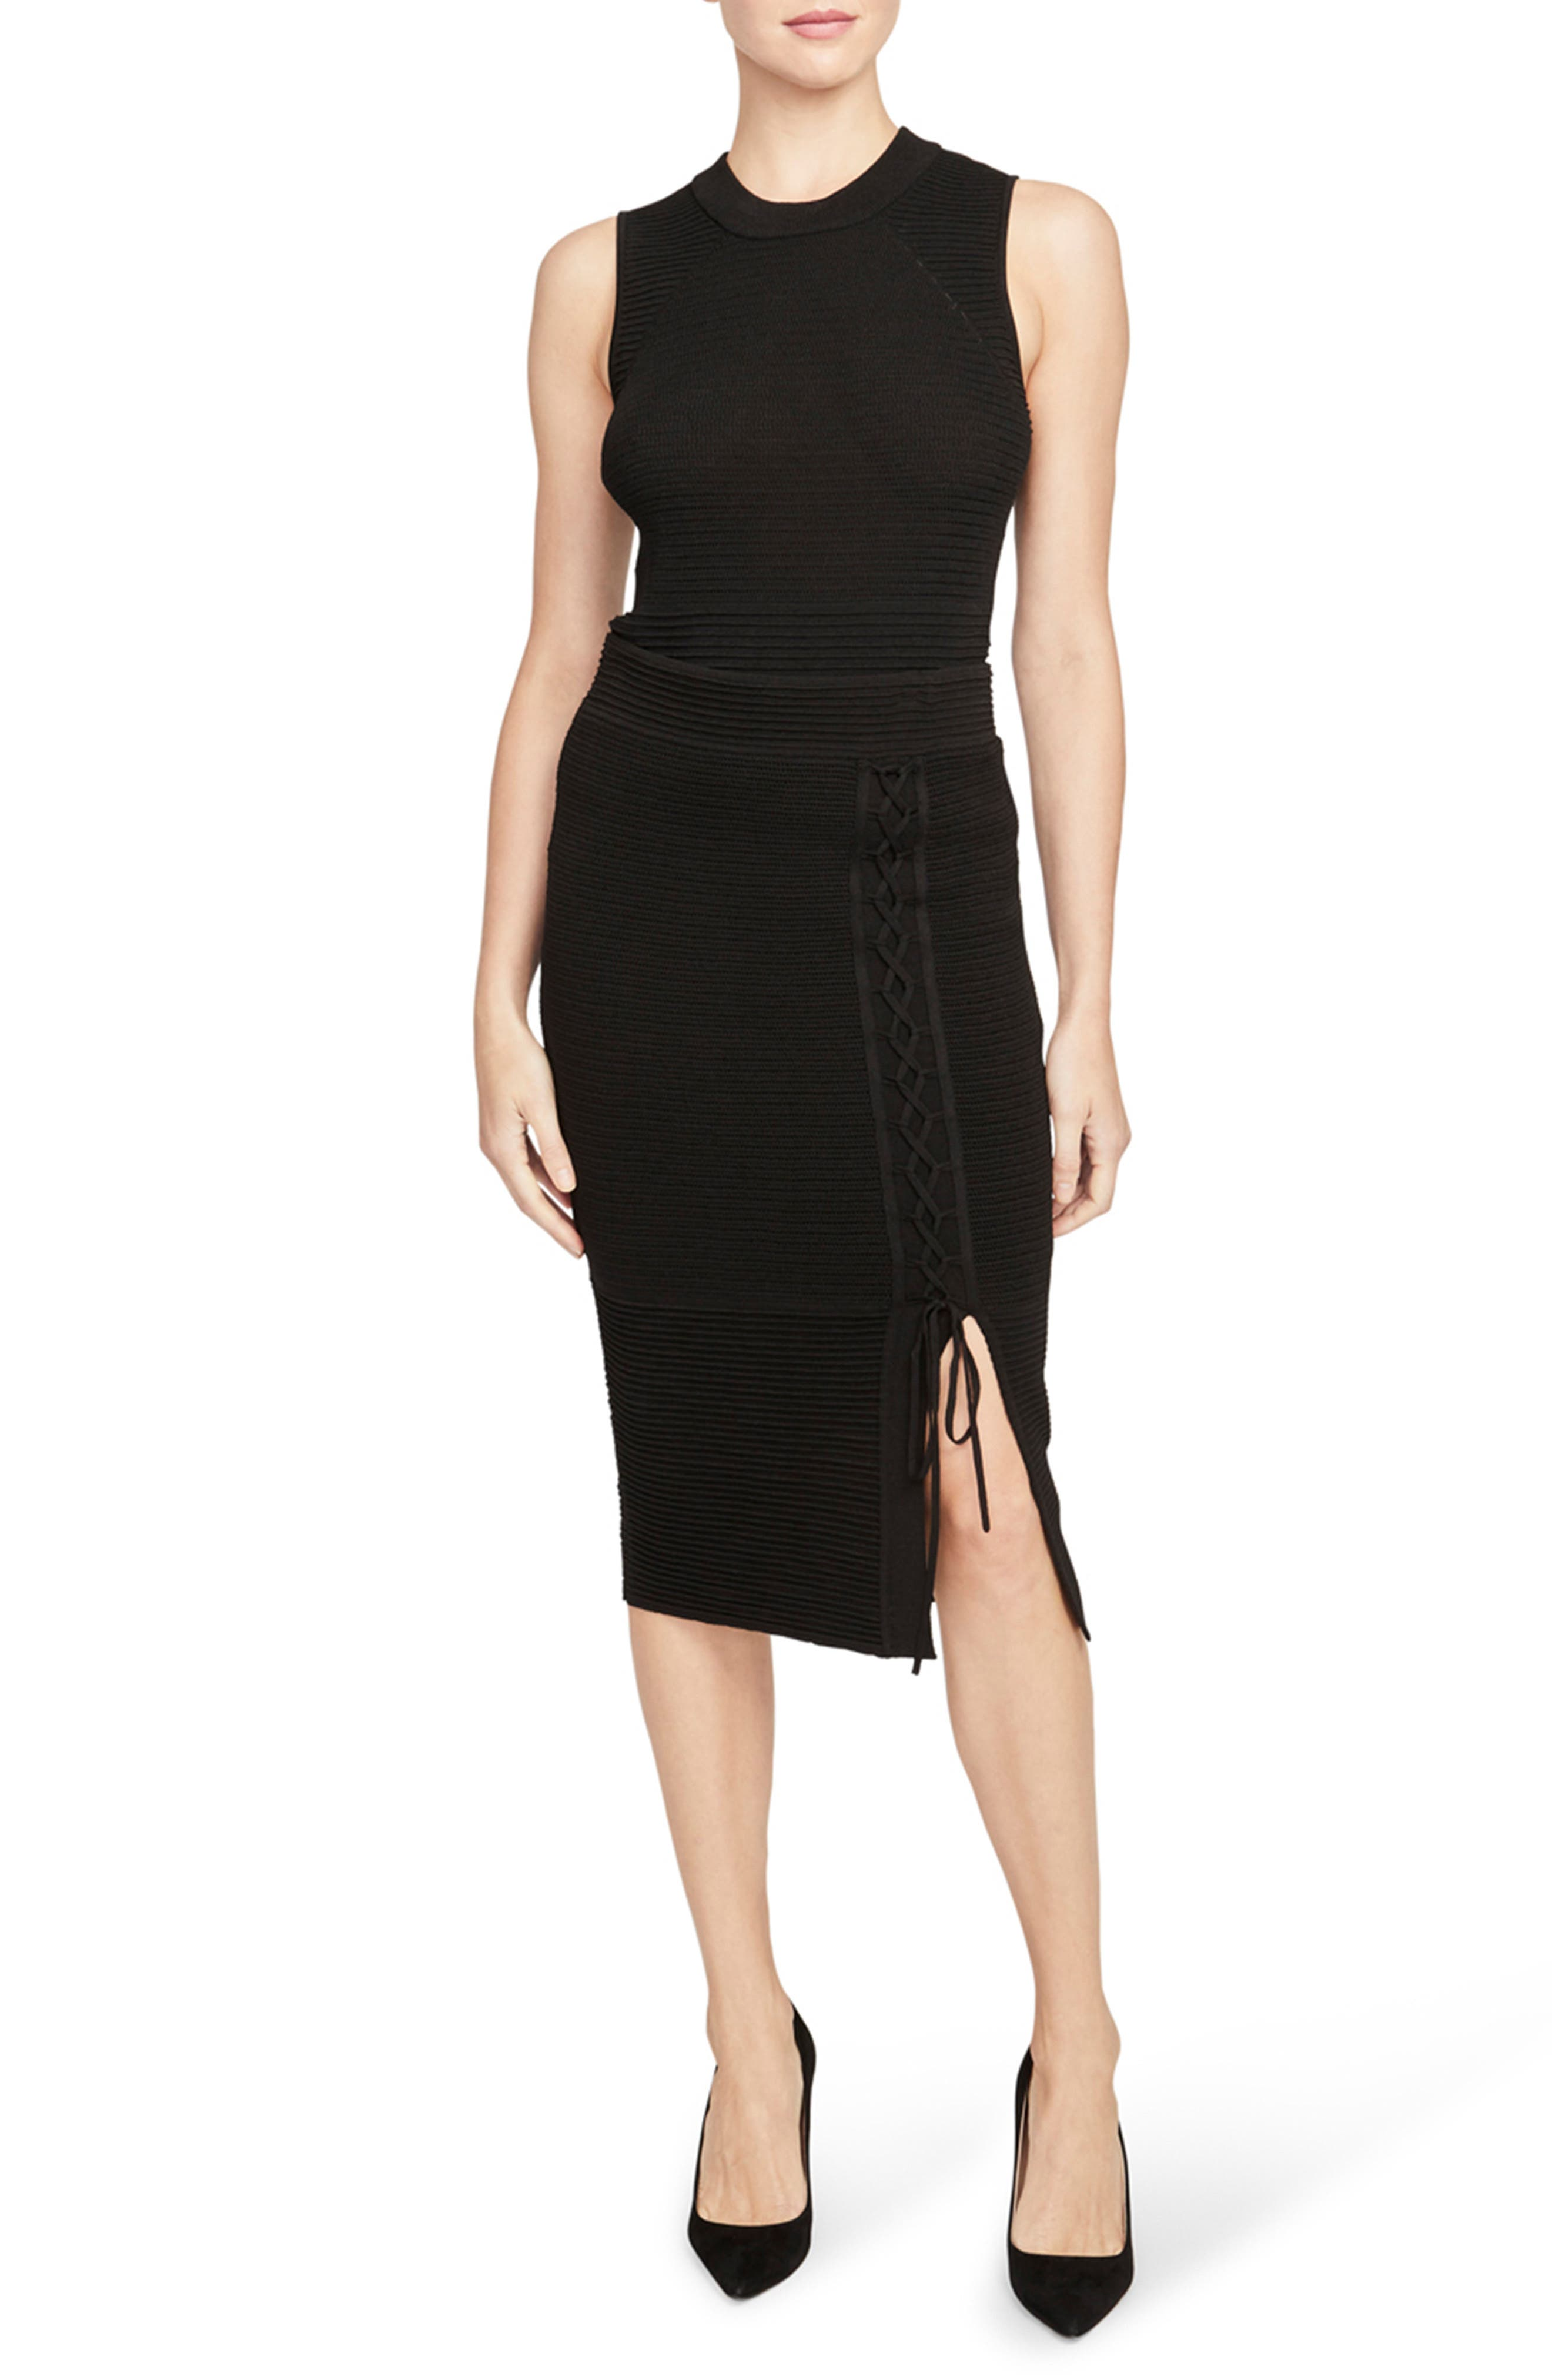 Rachel Roy Collection Ribbed Lace-Up Pencil Skirt, Black